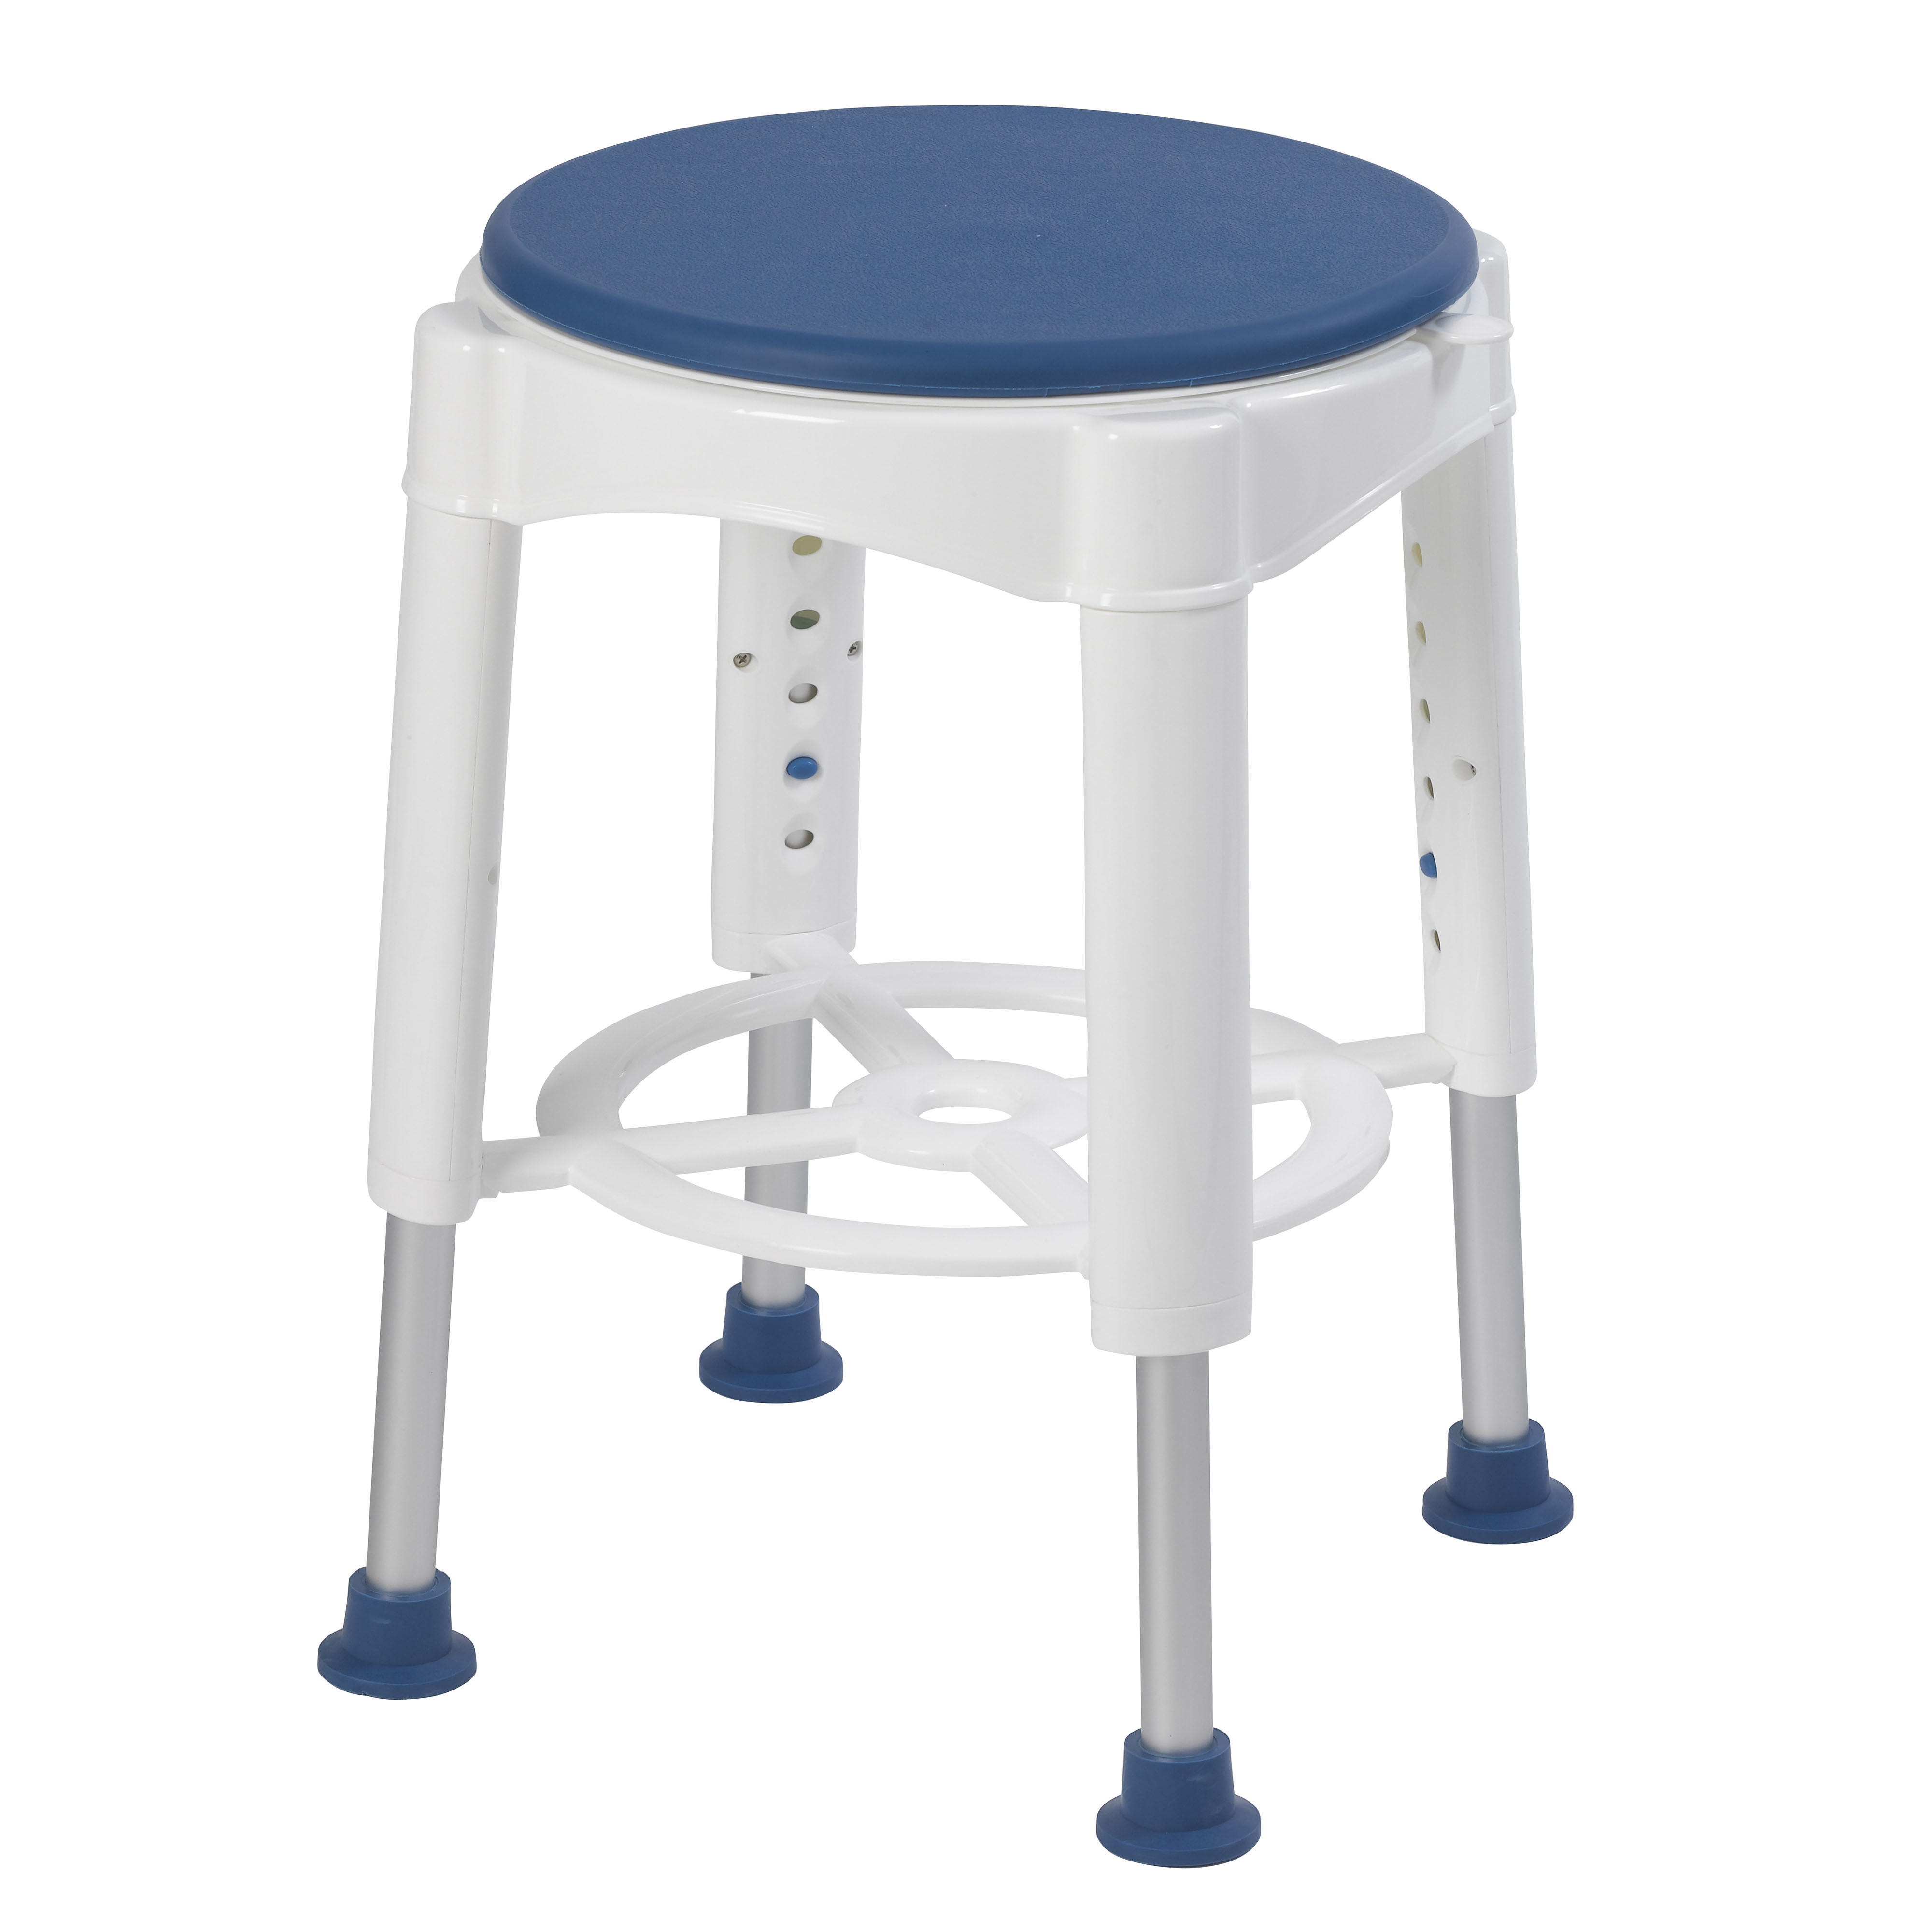 Bathroom Safety Swivel Seat Shower Stool – AMS